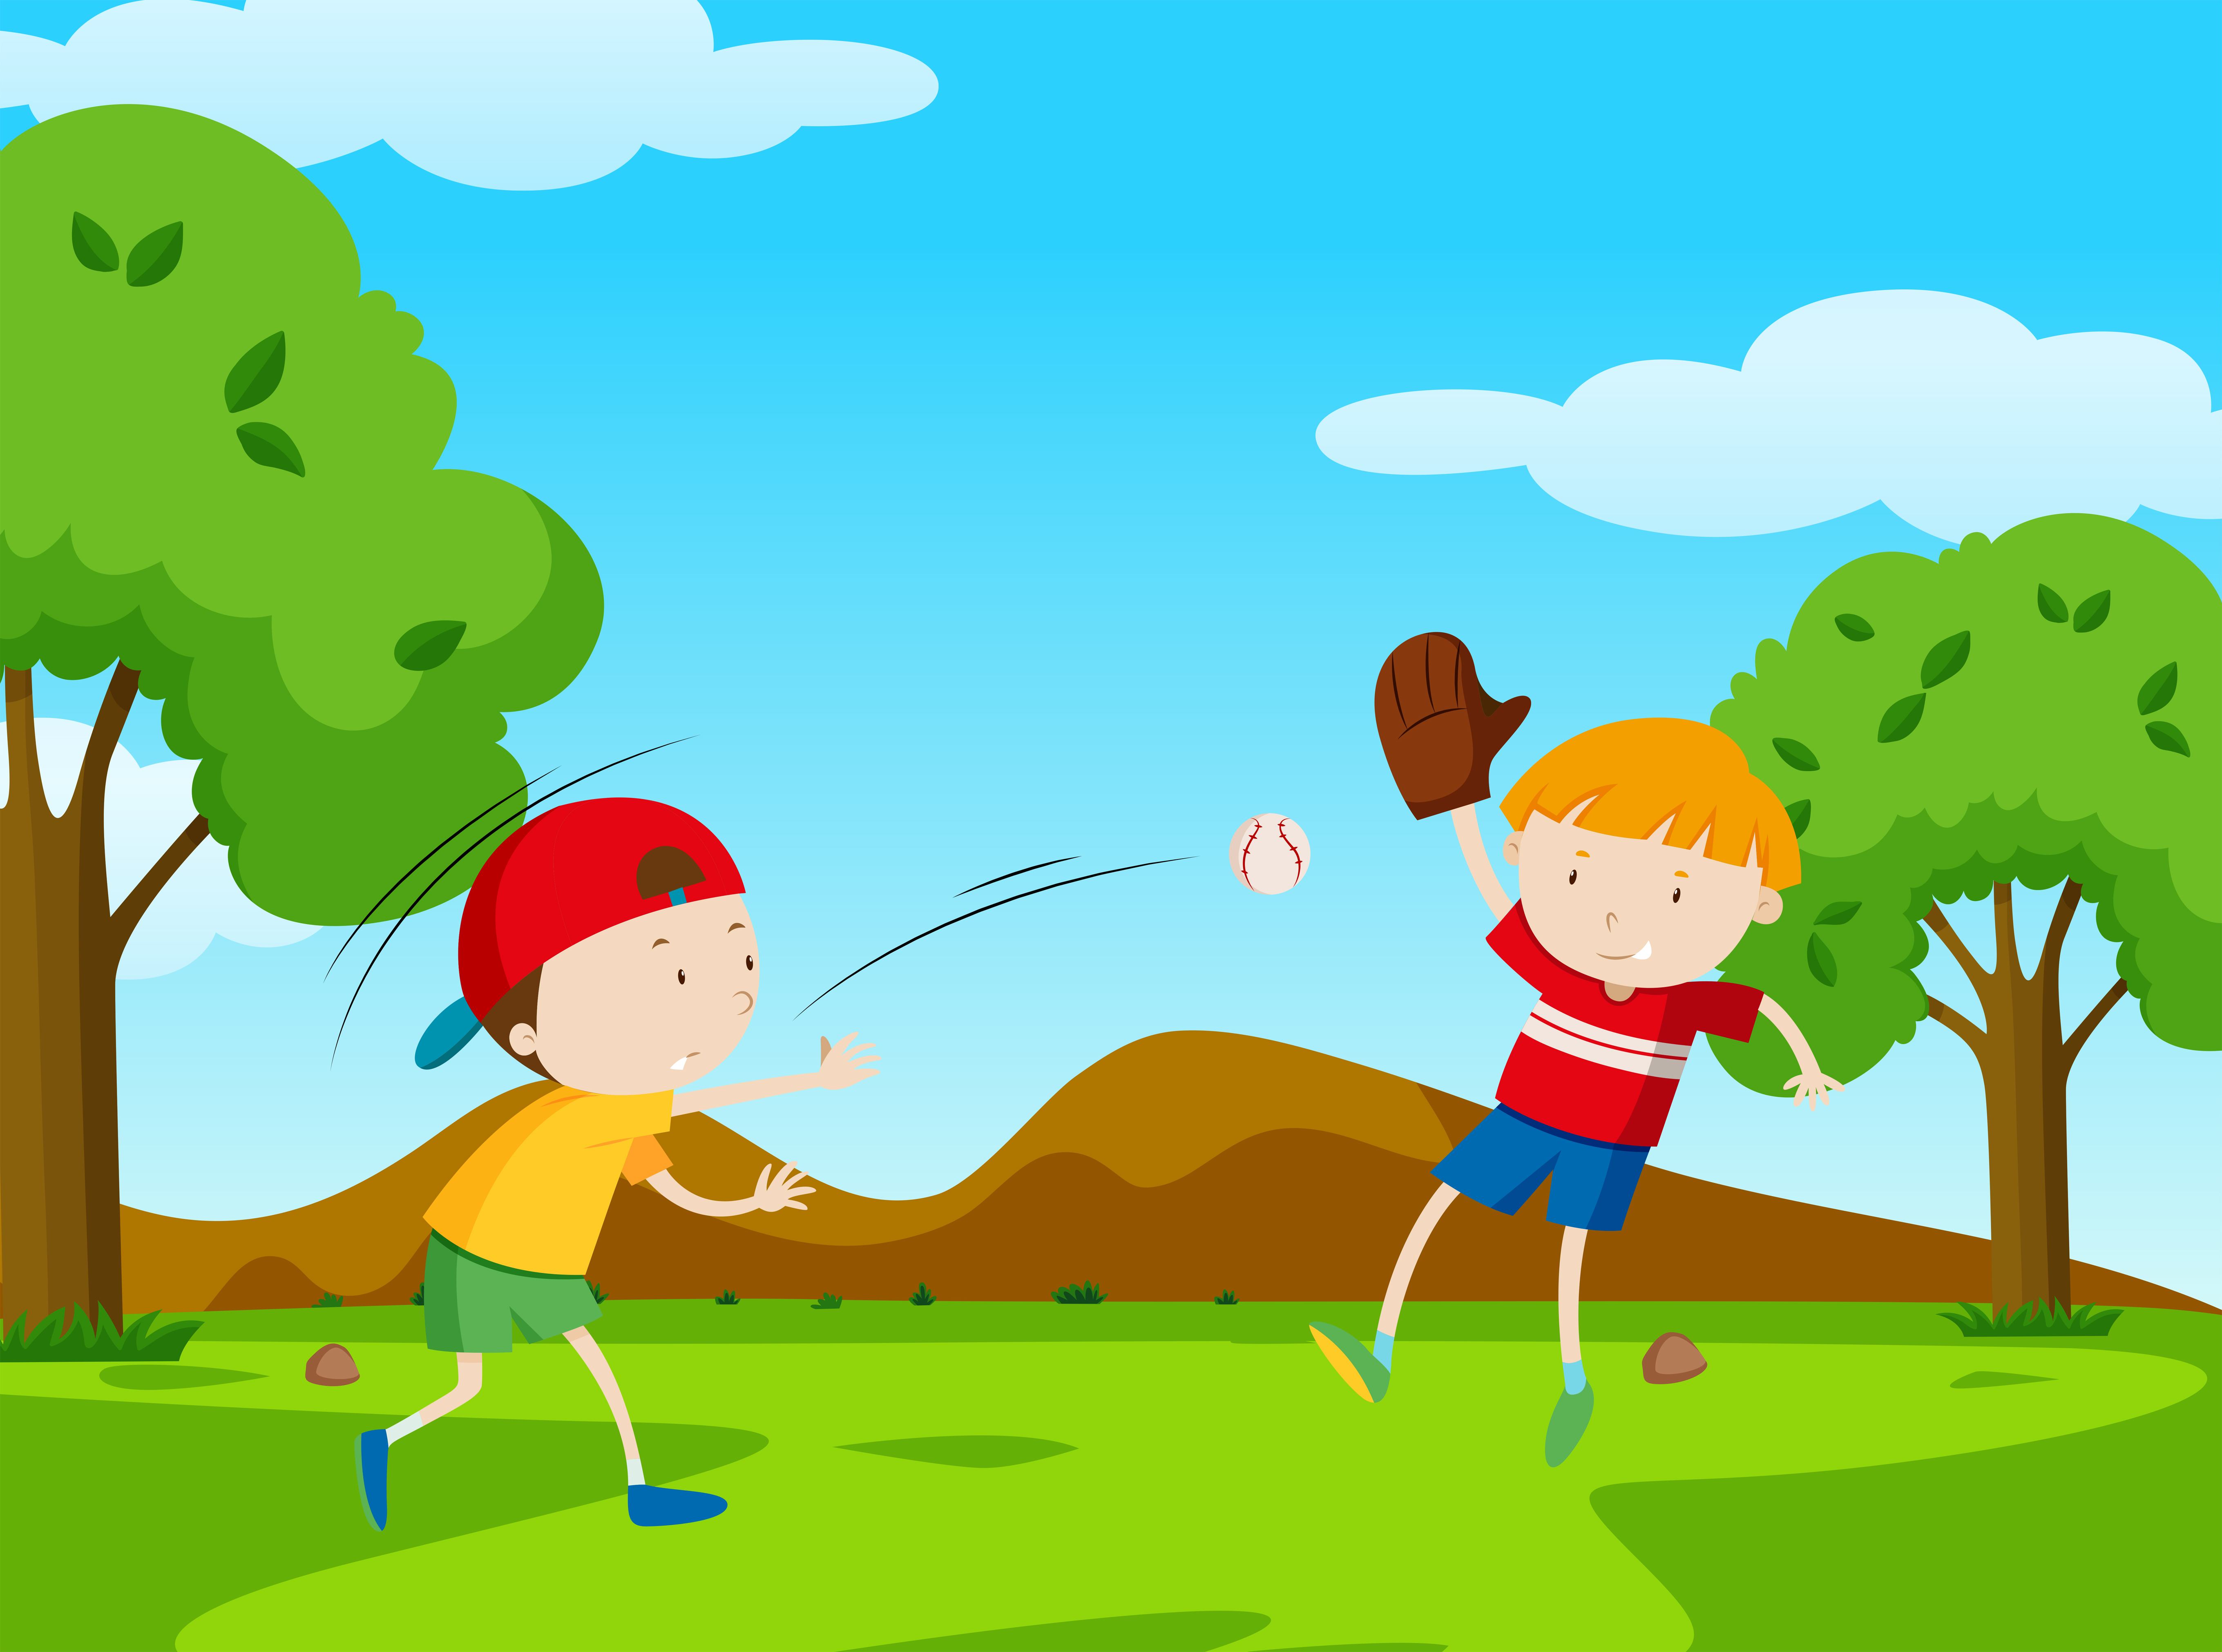 Two boys playing baseball in park - Download Free Vectors ... (5439 x 4044 Pixel)